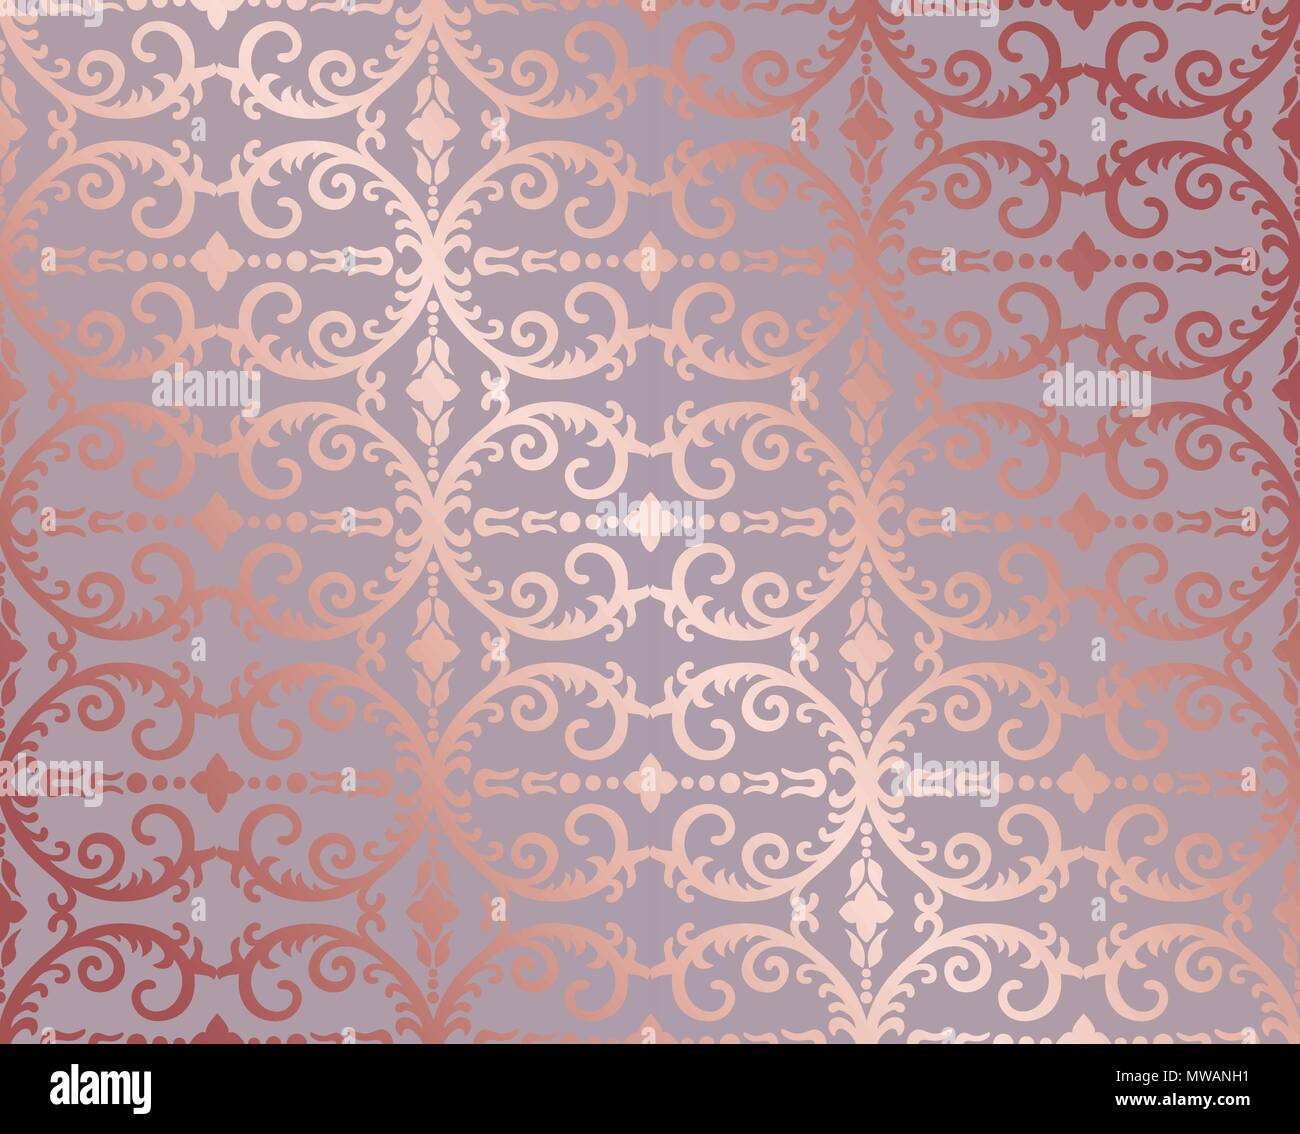 Seamless Rose Gold Floral And Foliage Wallpaper Pattern